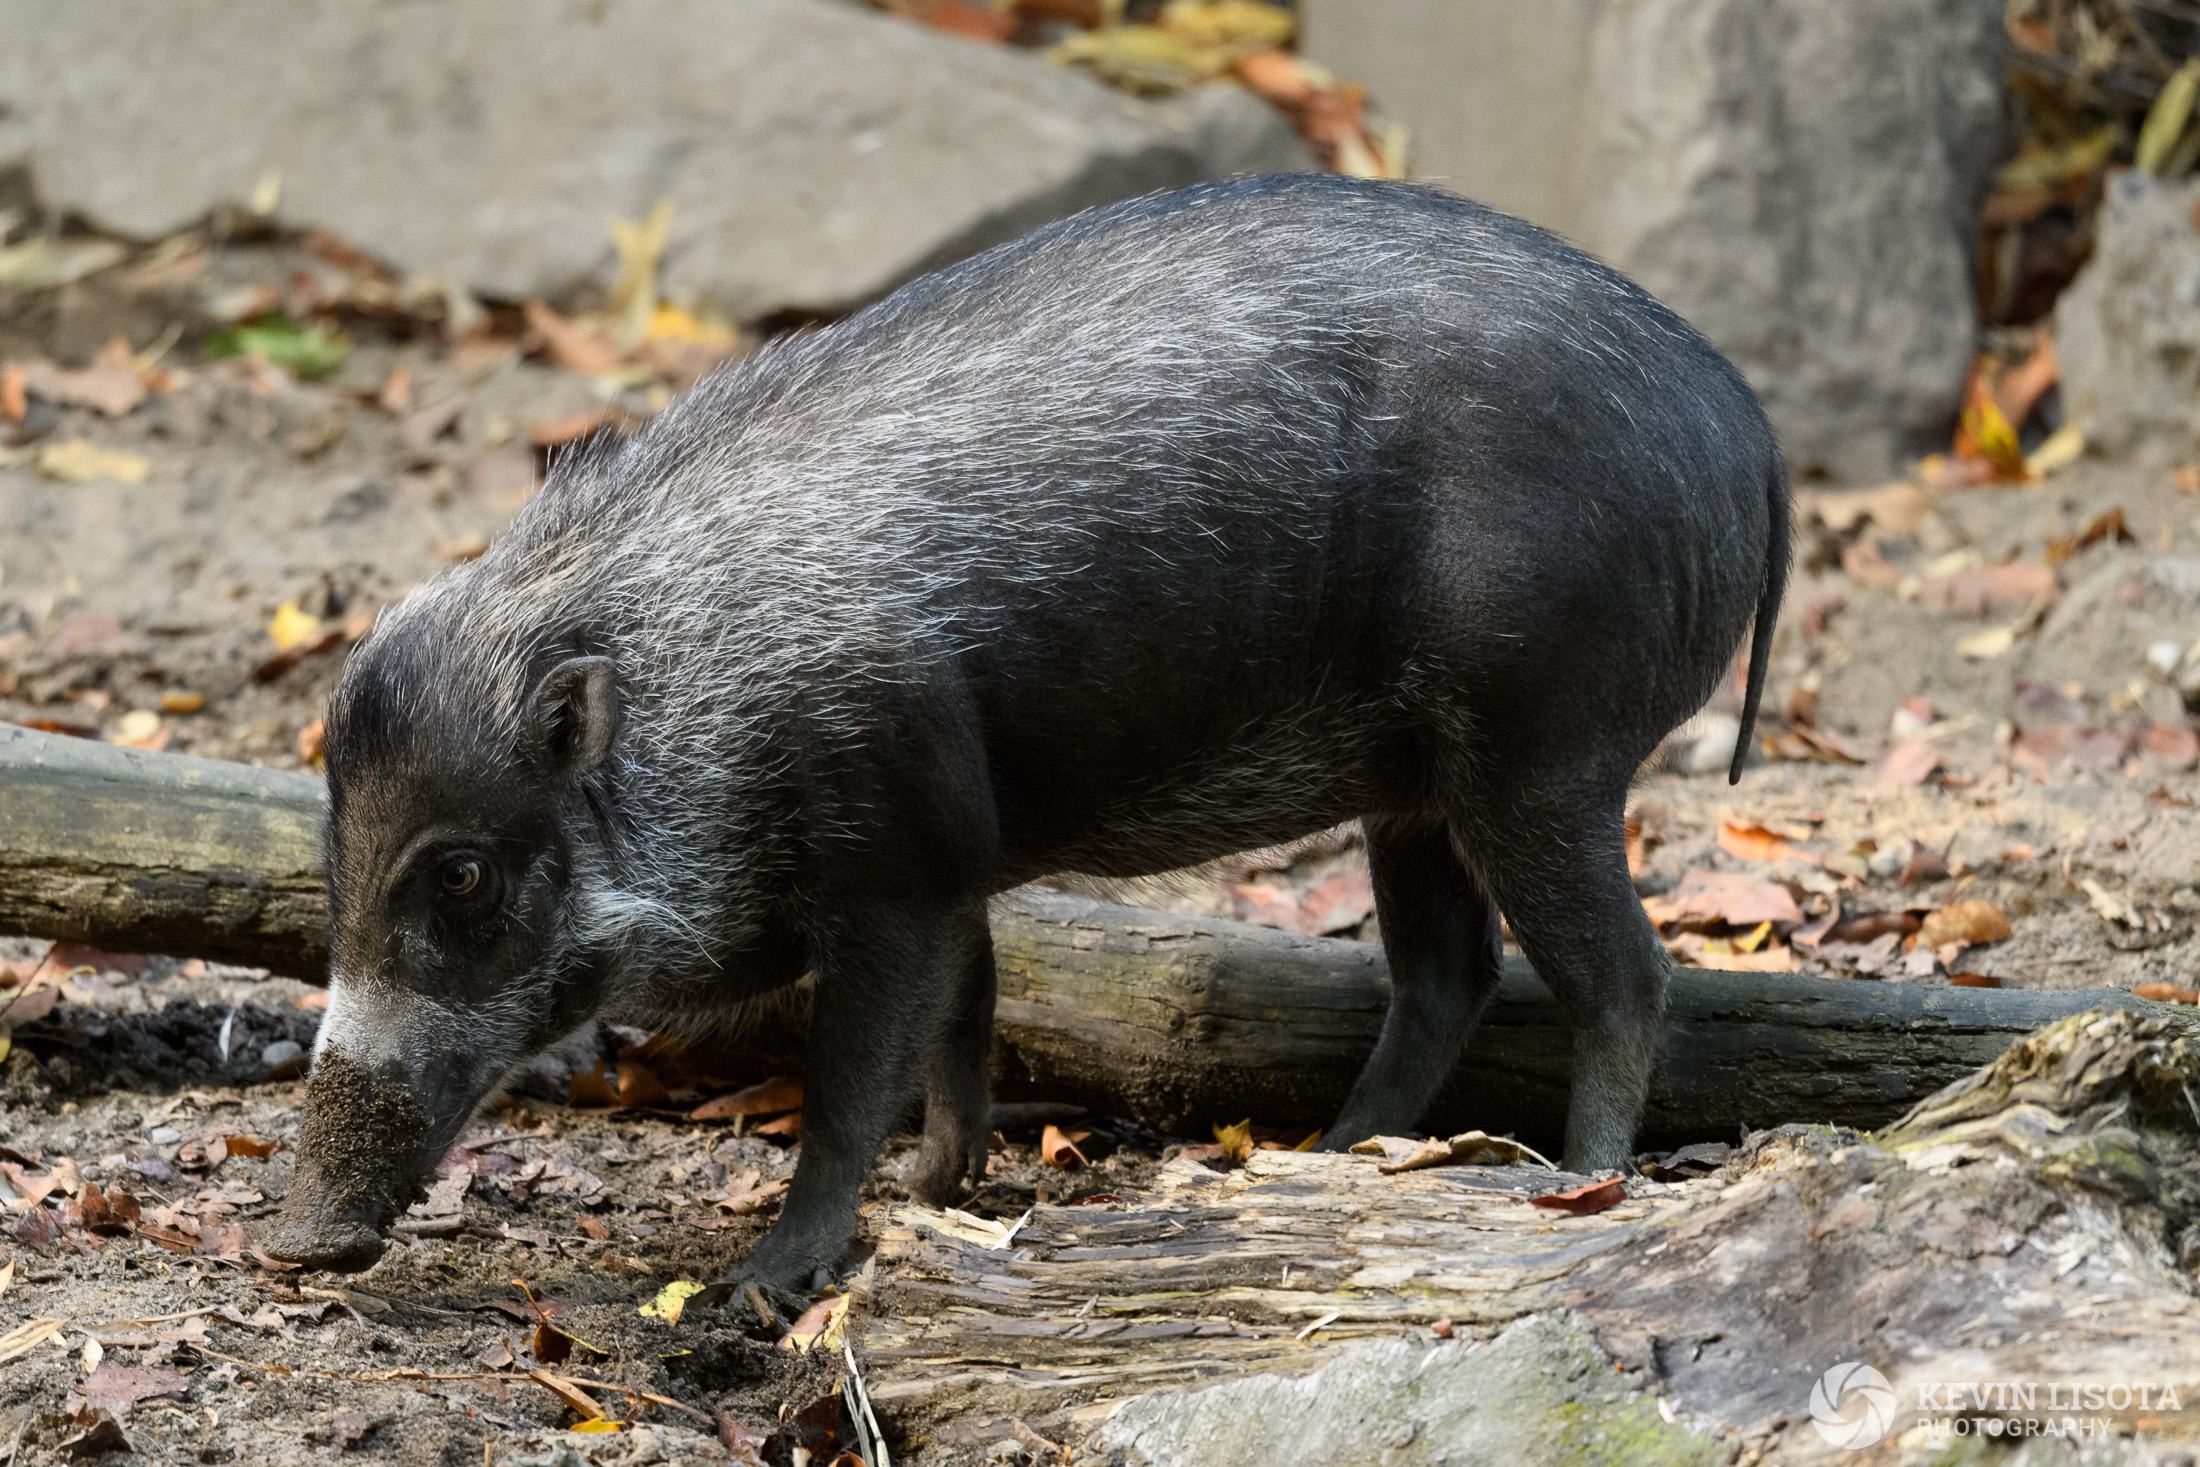 Warty Pig - Woodland Park Zoo